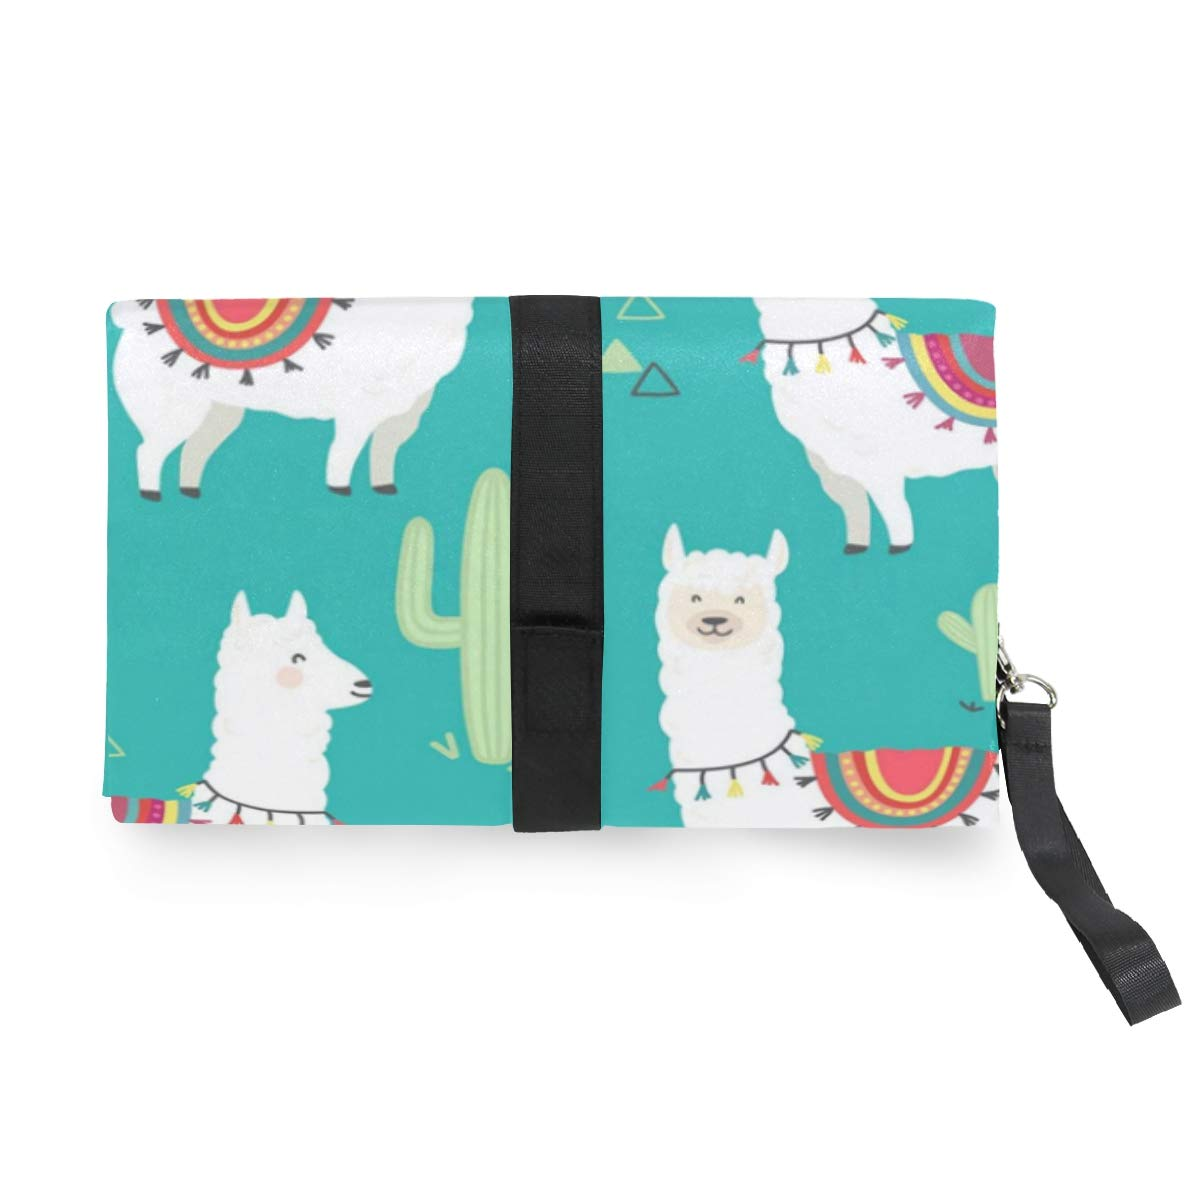 Llama Alpaca Waterproof Baby Changing Pad Diaper Bag Mat Foldable Travel Changing Station Portable Diaper Changing Pad Stroller Strap,Side Pocket for Wipes Diaper| for Infants /& Newborns